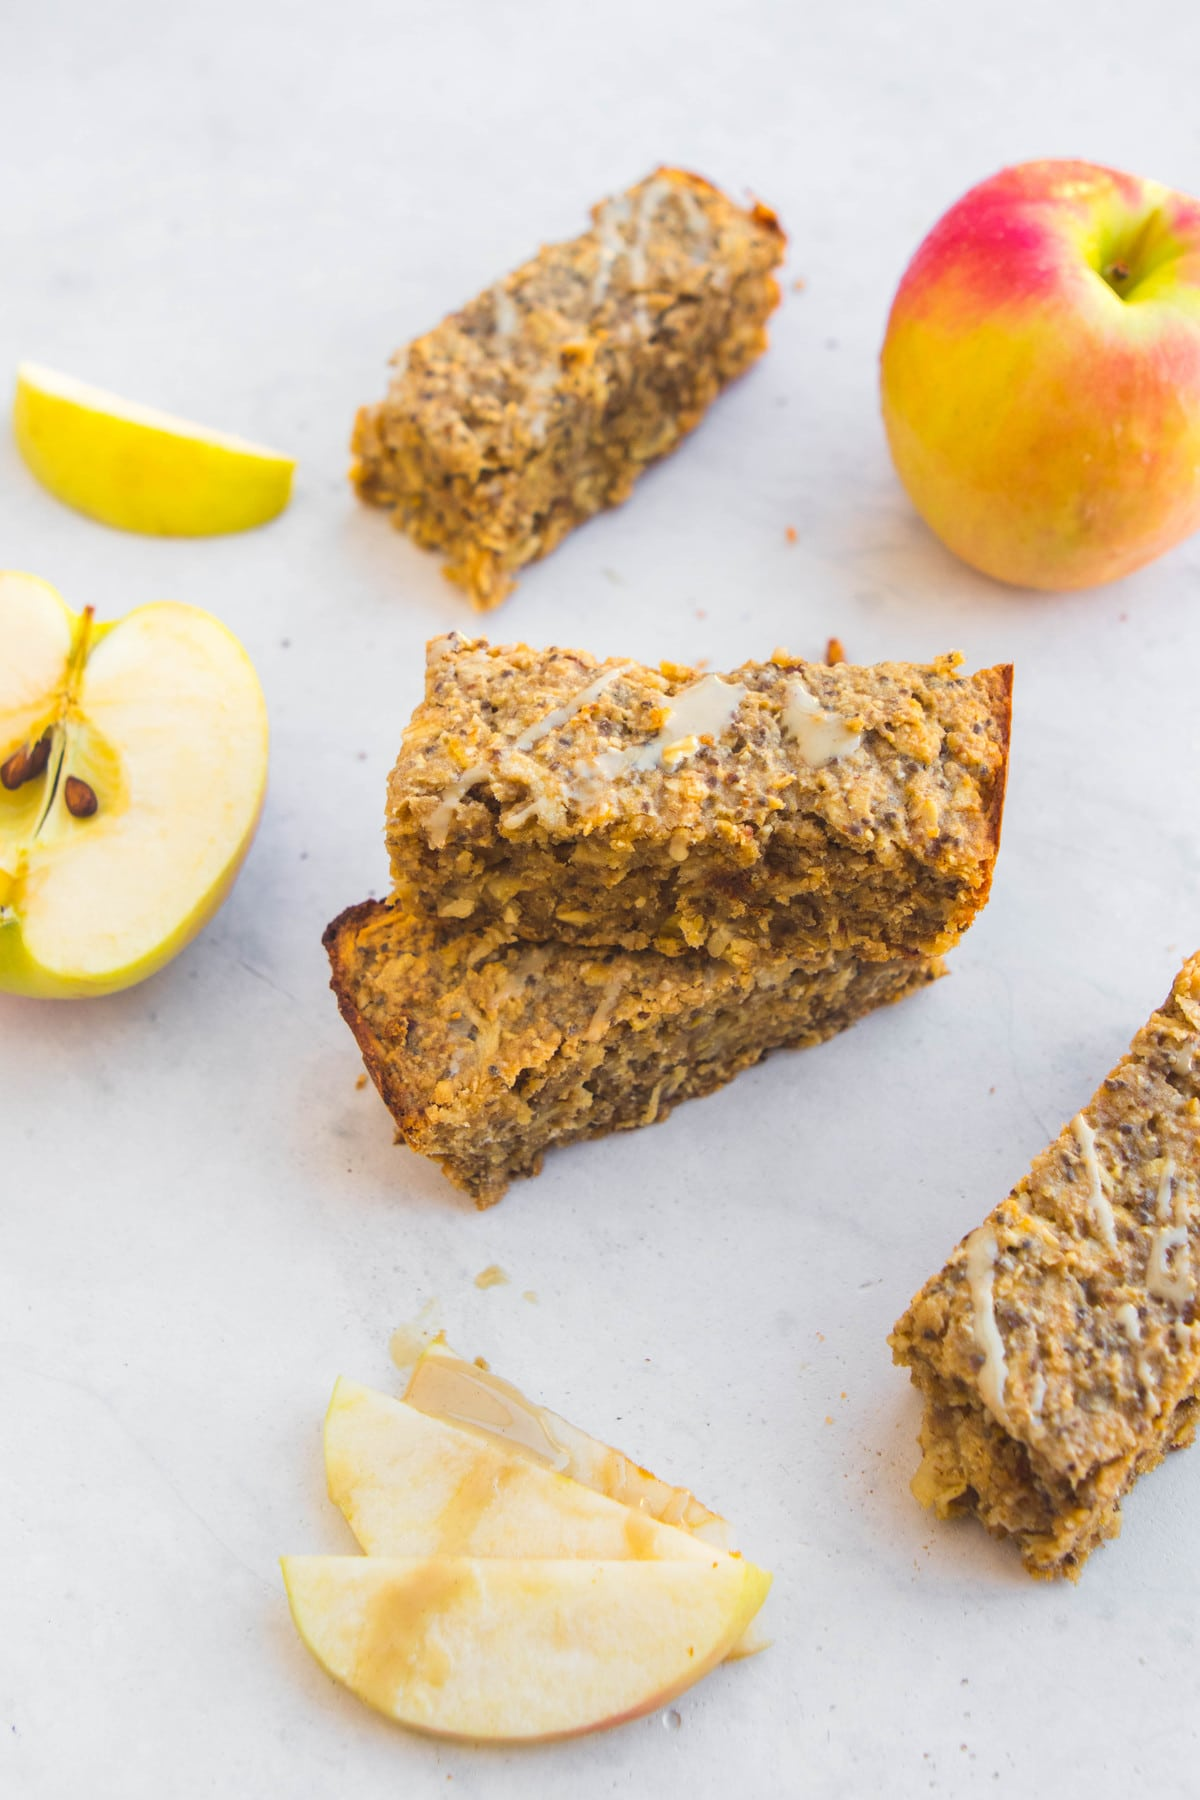 Salted Caramel Apple Breakfast Bars - Easy Vegan Meal Prep #vegan #plantbased